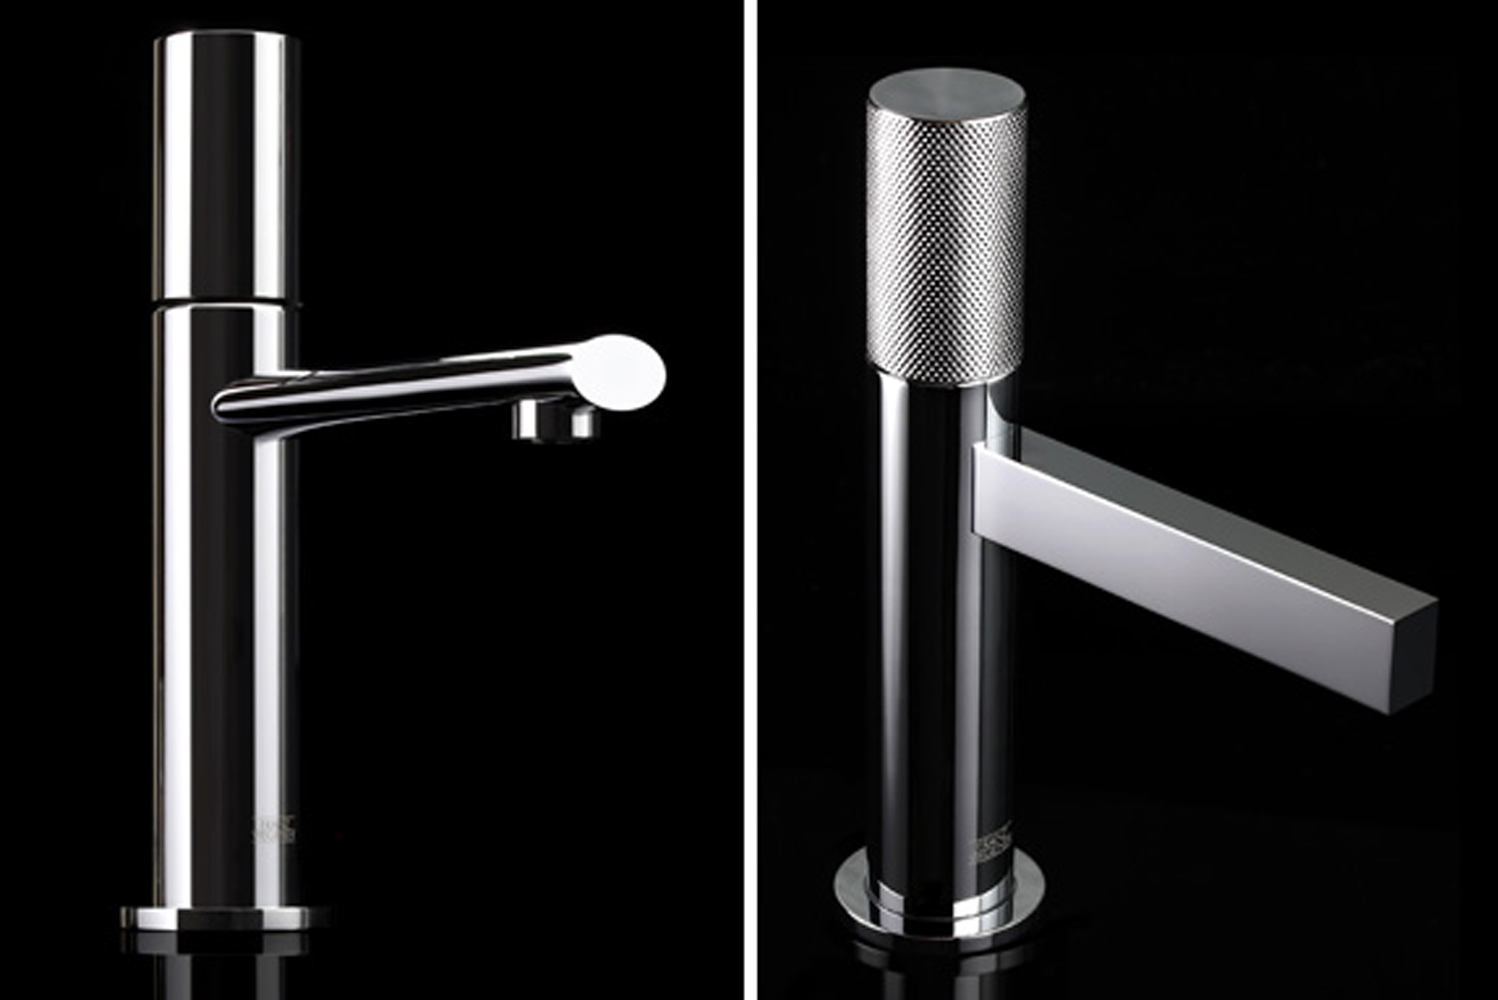 Long and lean, Lollipop's single lever faucet has a no-notch-back tilting handle, which is available with or without diamond knurling details.